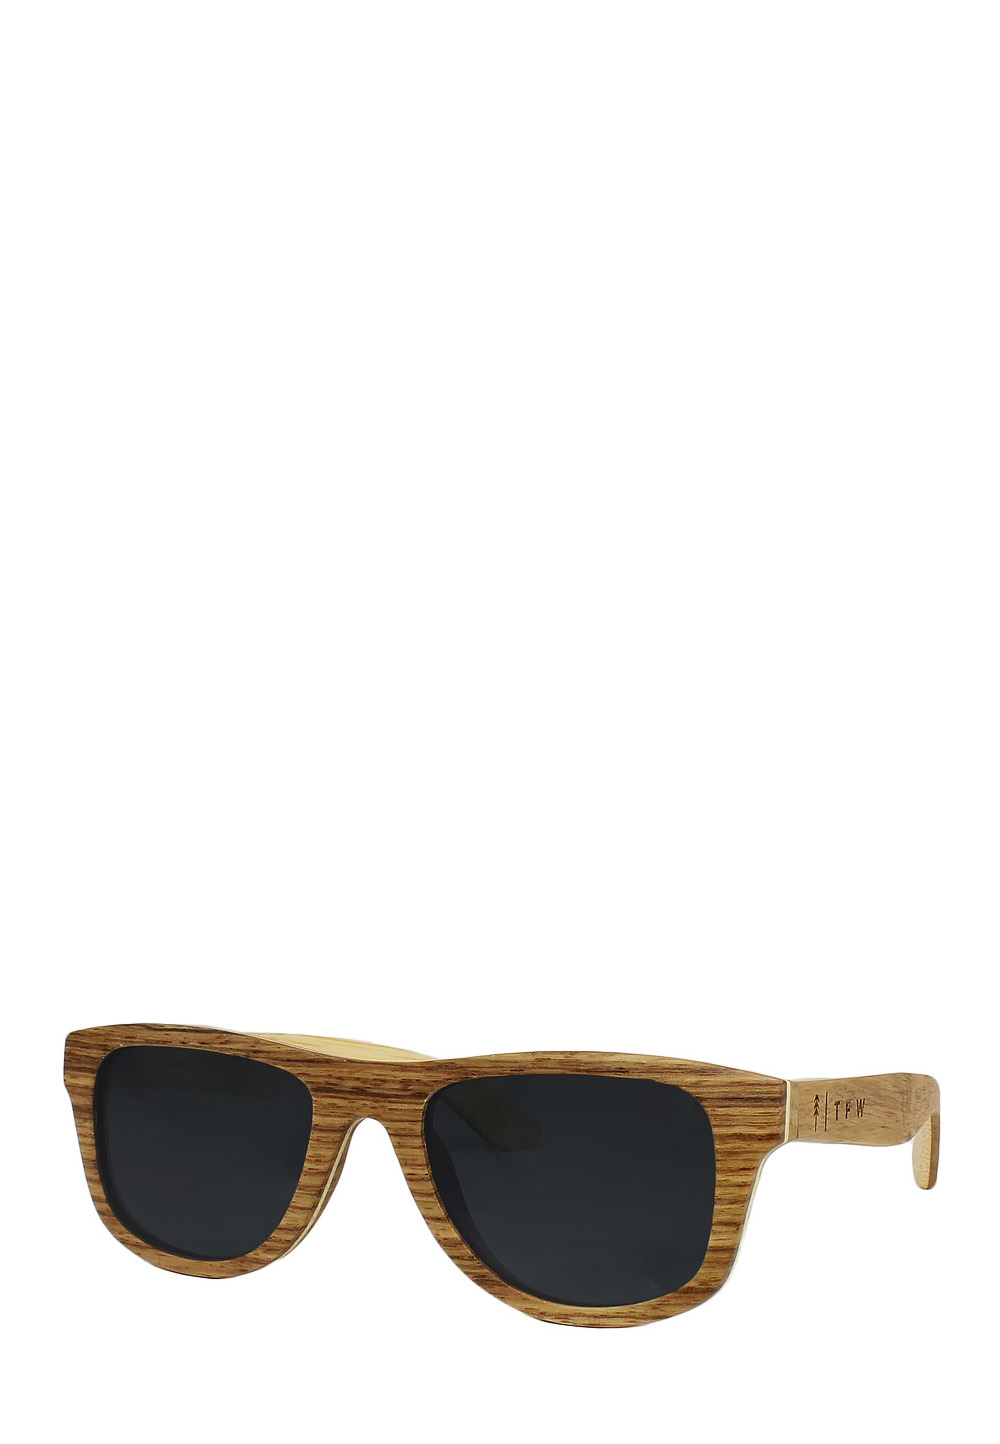 Time FOR Wood Sonnenbrille Erino Small, UV 400, hellbraun